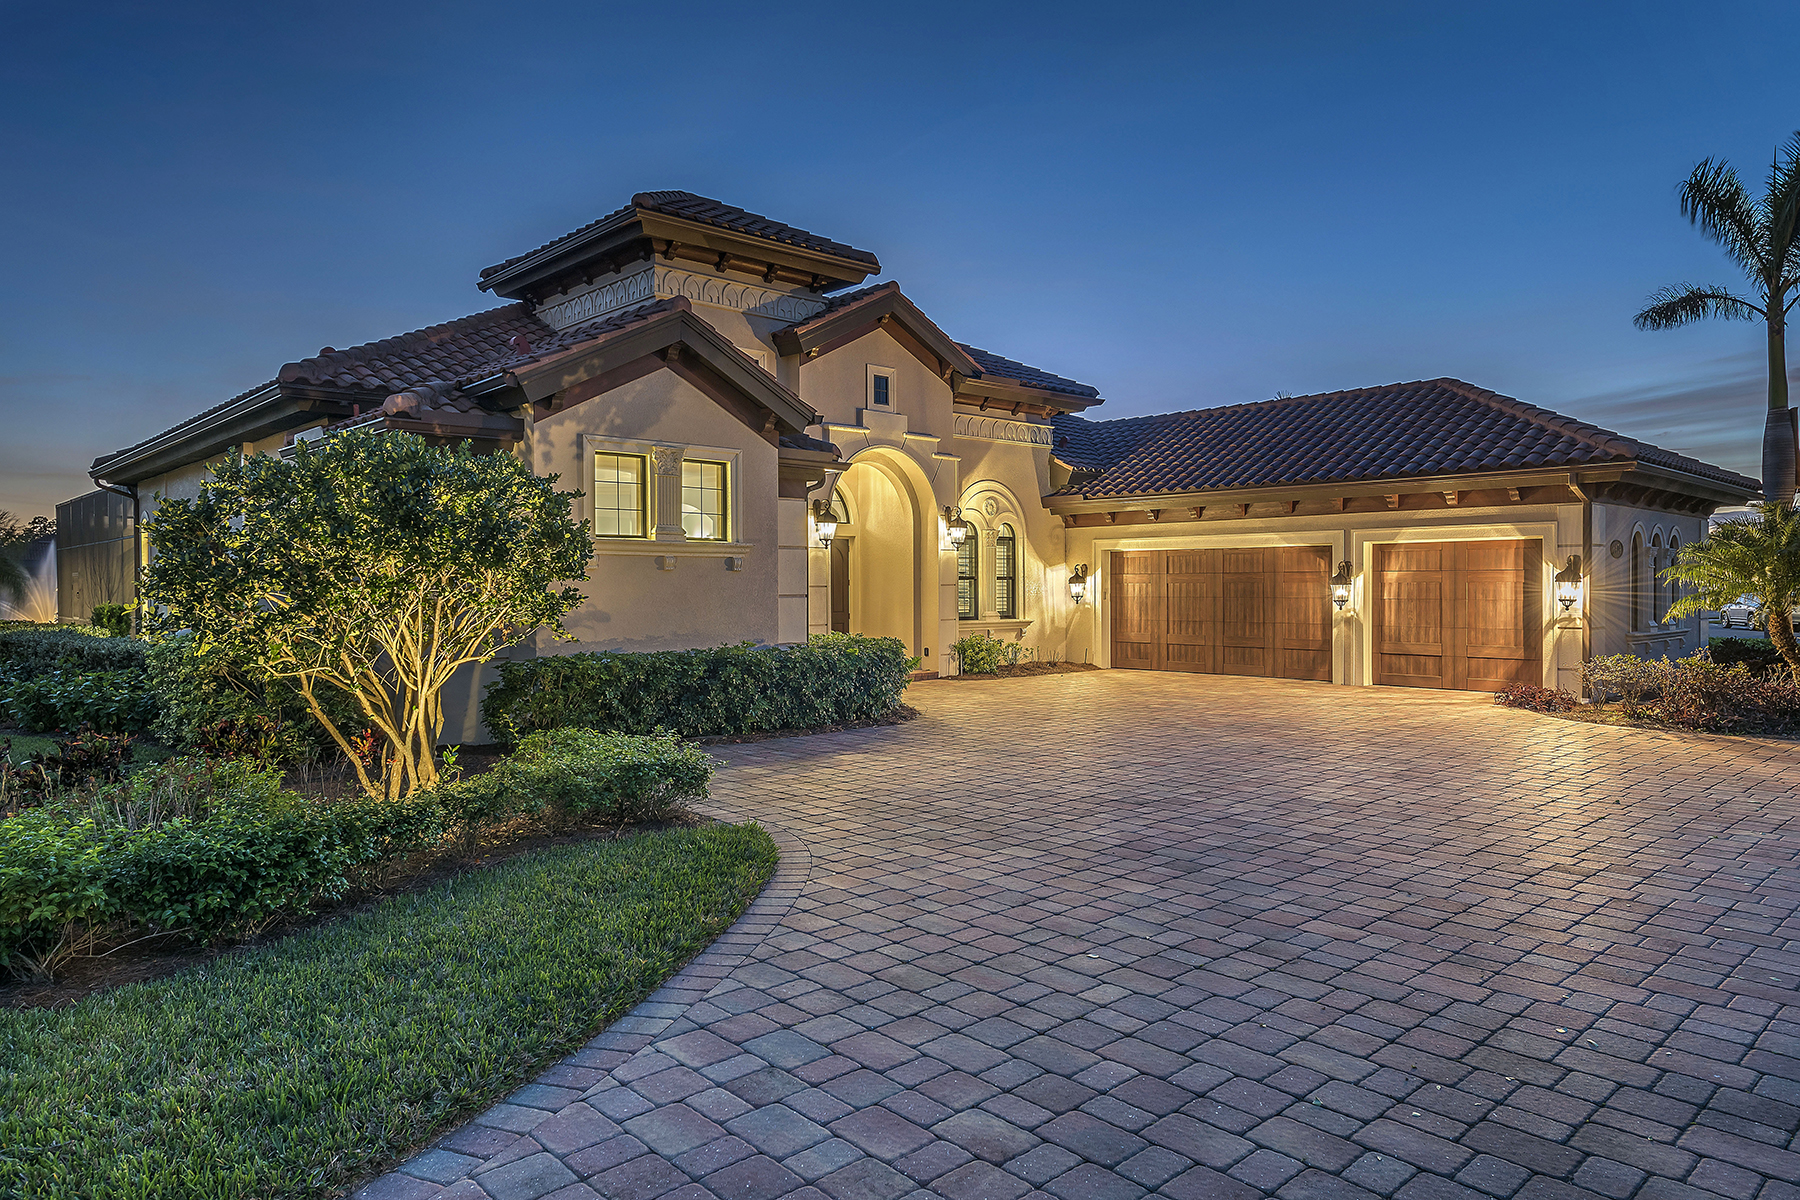 Single Family Home for Sale at LELY RESORT 6474 Emilia Ct, Naples, Florida 34113 United States